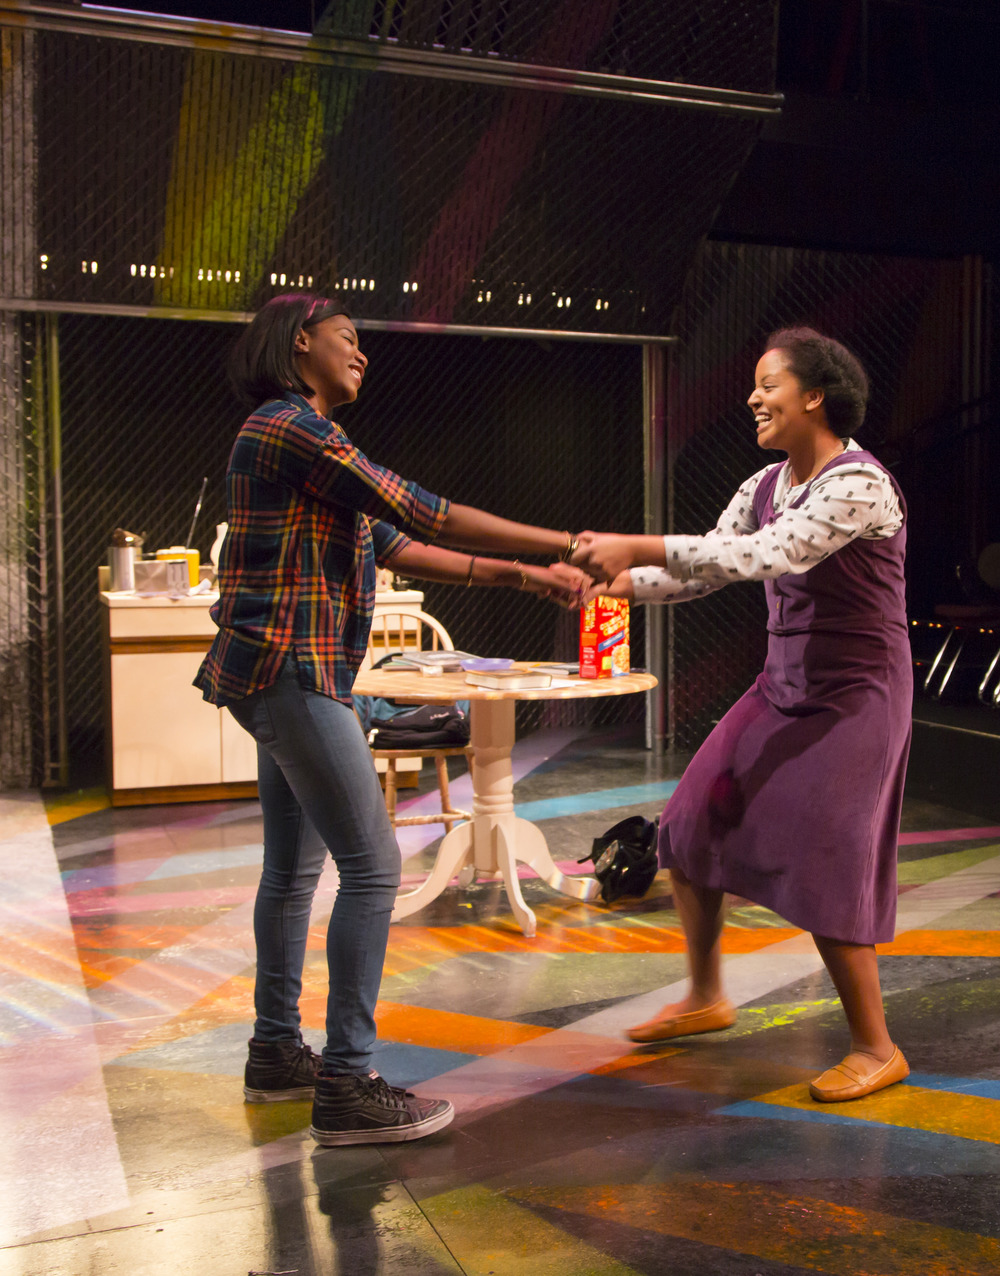 Jasmine Carmichael and Shanae Burch in  Milk Like Sugar. Milk Like Sugar  plays from January 29 – February 27, South End / Calderwood Pavilion at the BCA. Photo by T. Charles Erickson.